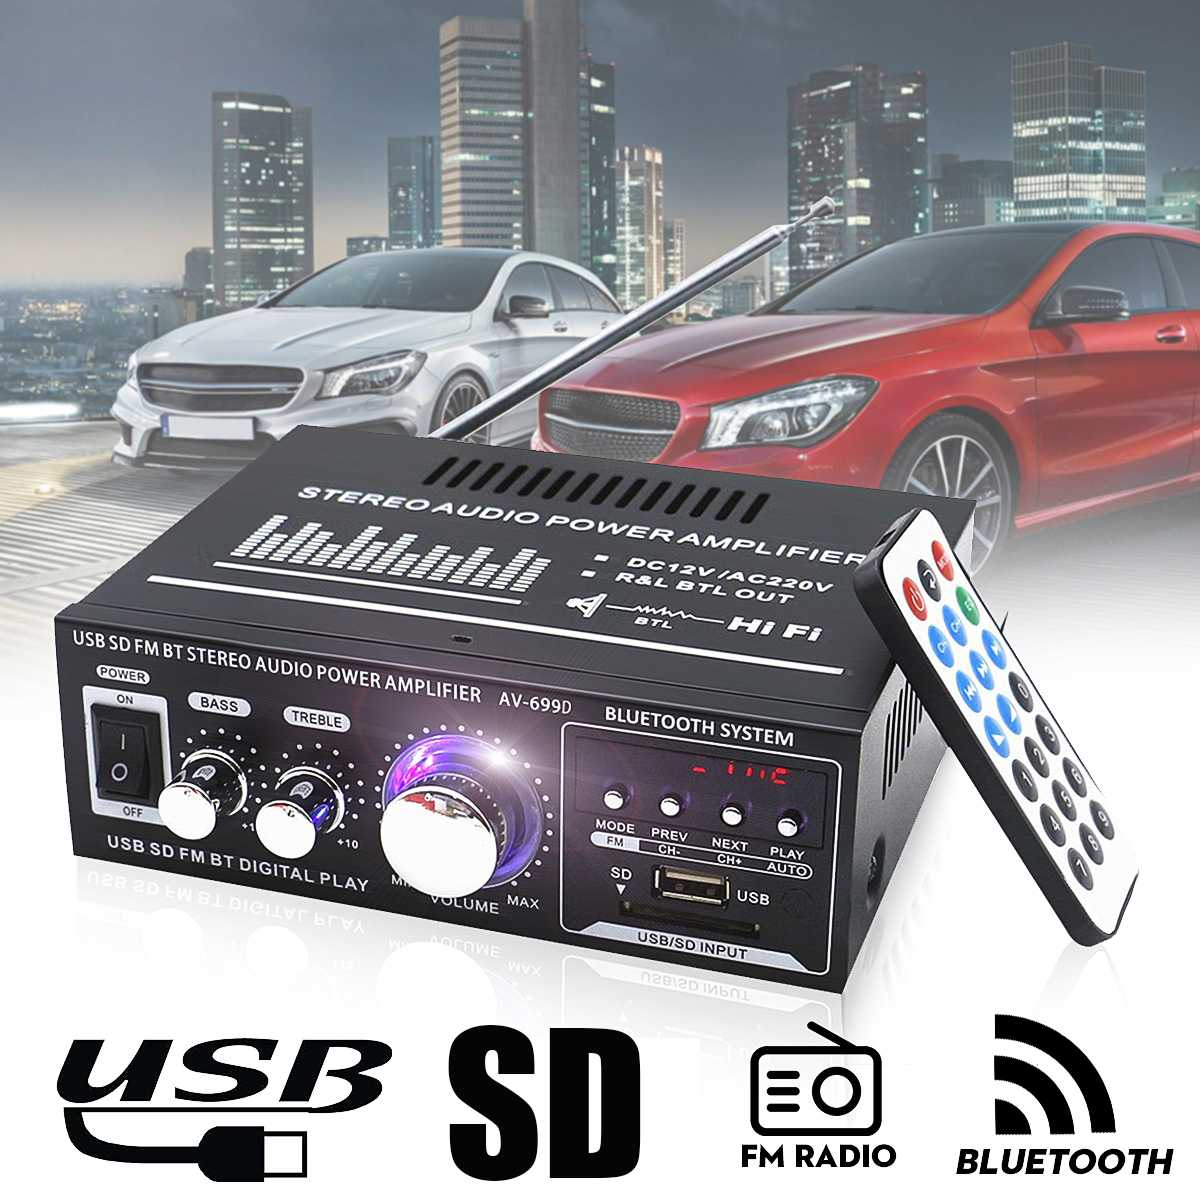 12V/220V 400W 2 CH bluetooth Car HiFi Stereo Amplifier USB SD FM Radio Power Stereo Car Amplifier Audio Home Amplifier12V/220V 400W 2 CH bluetooth Car HiFi Stereo Amplifier USB SD FM Radio Power Stereo Car Amplifier Audio Home Amplifier